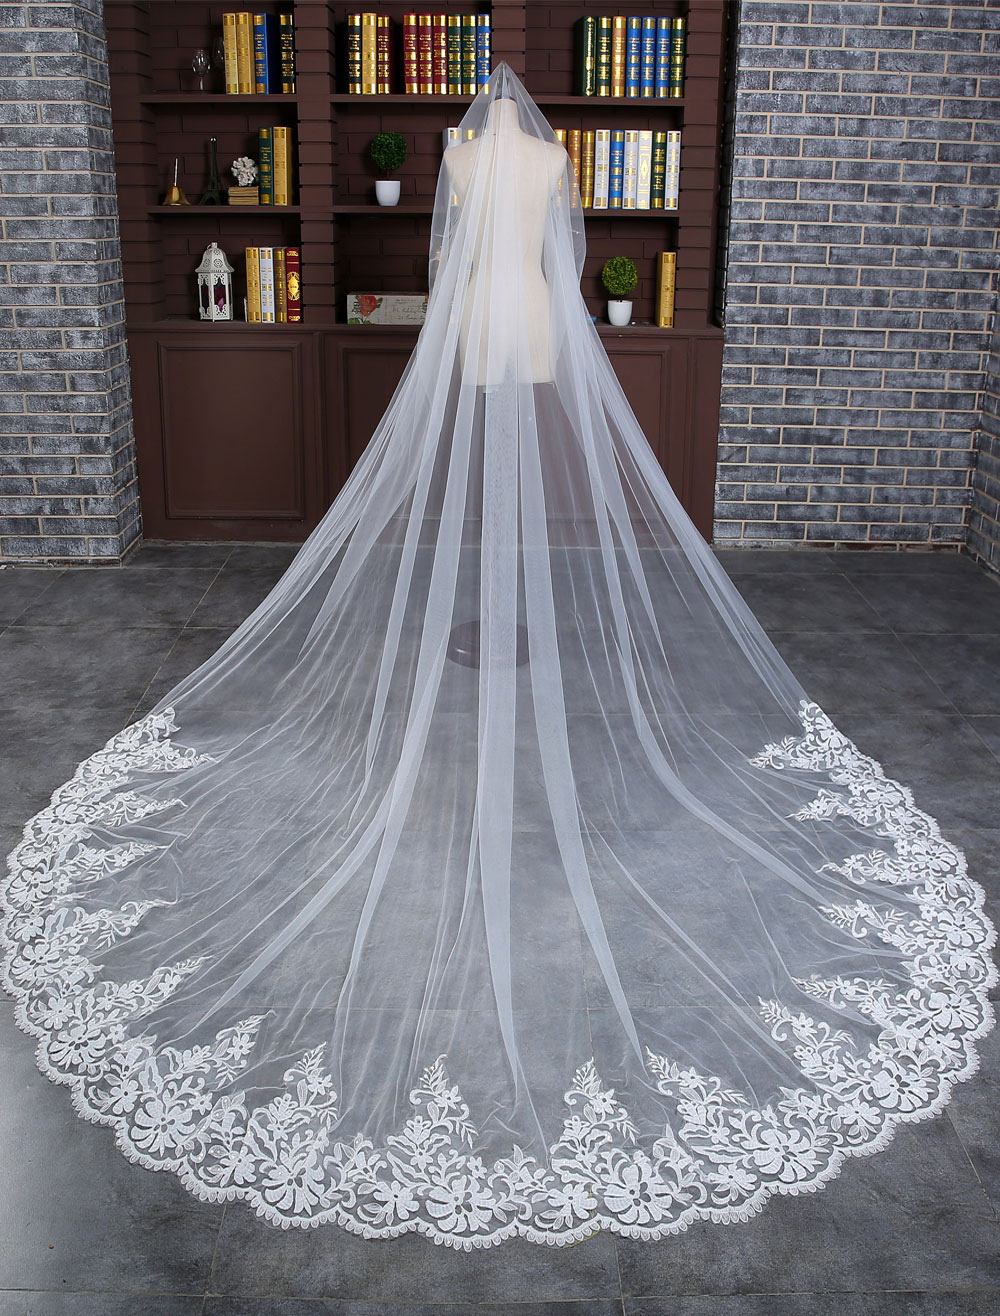 Lace Wedding Veil Ivory One-tier Oval Lace Applique Edge Sequin Bridal Cathedral Veil With Comb